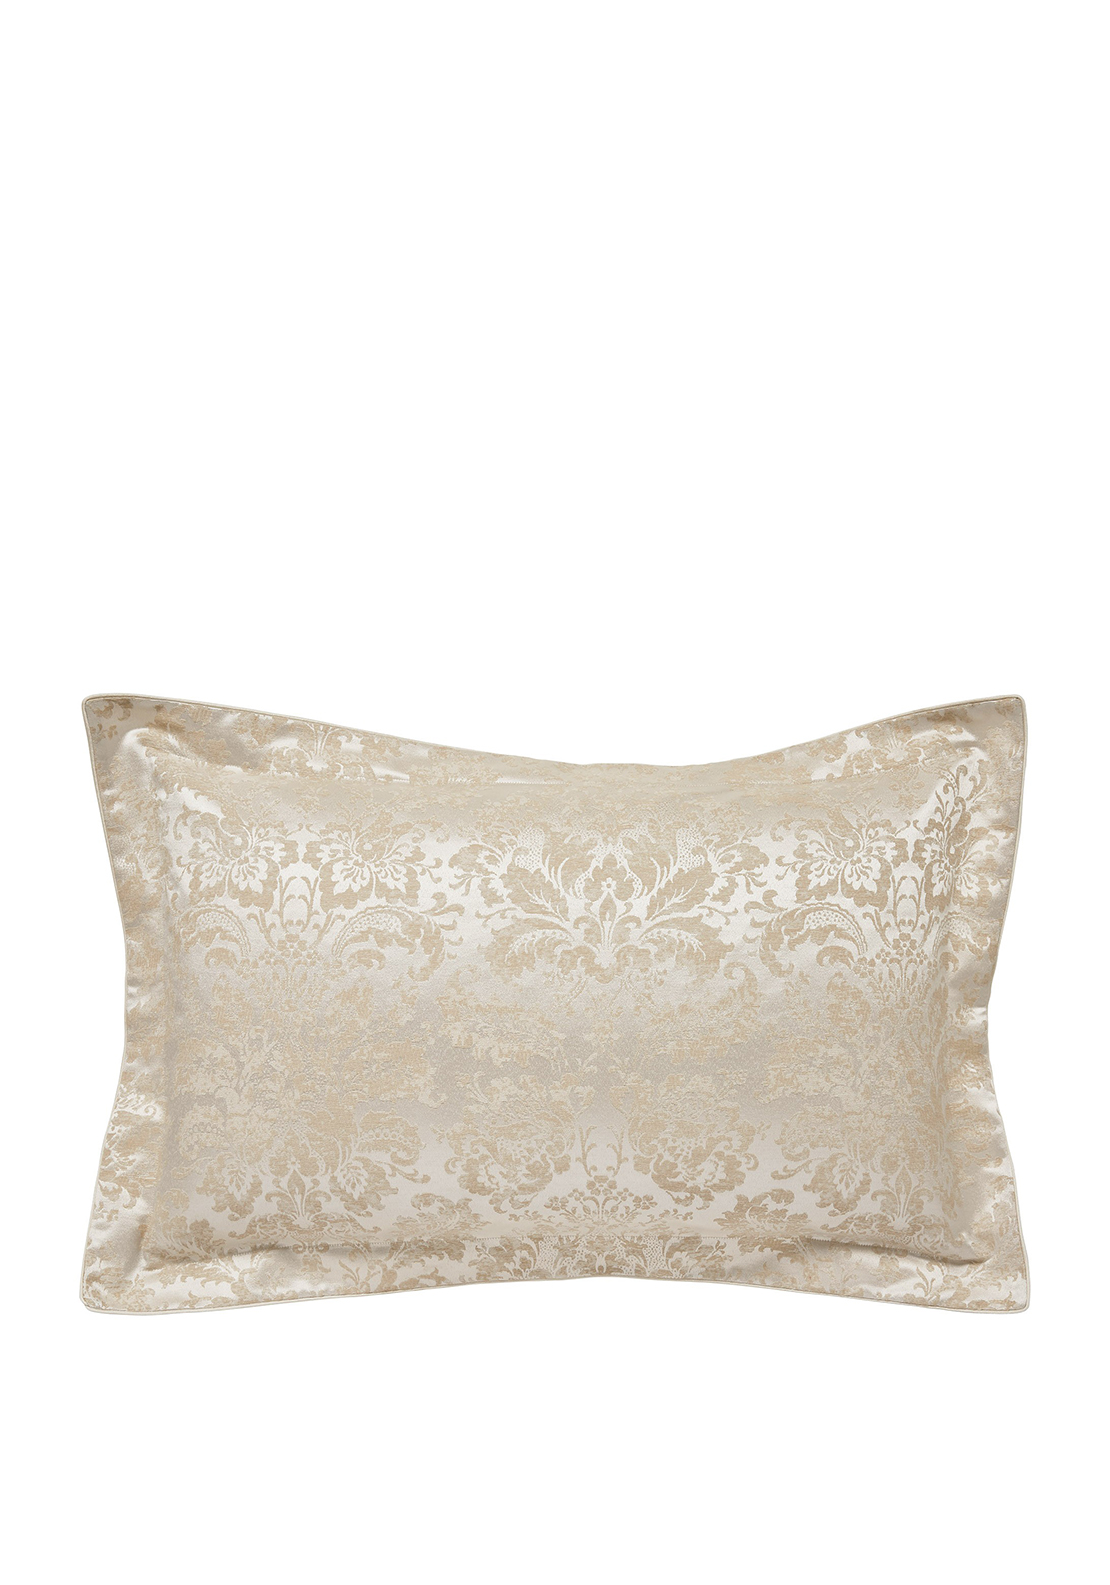 Sanderson Floriella Pillow Covers Oyster